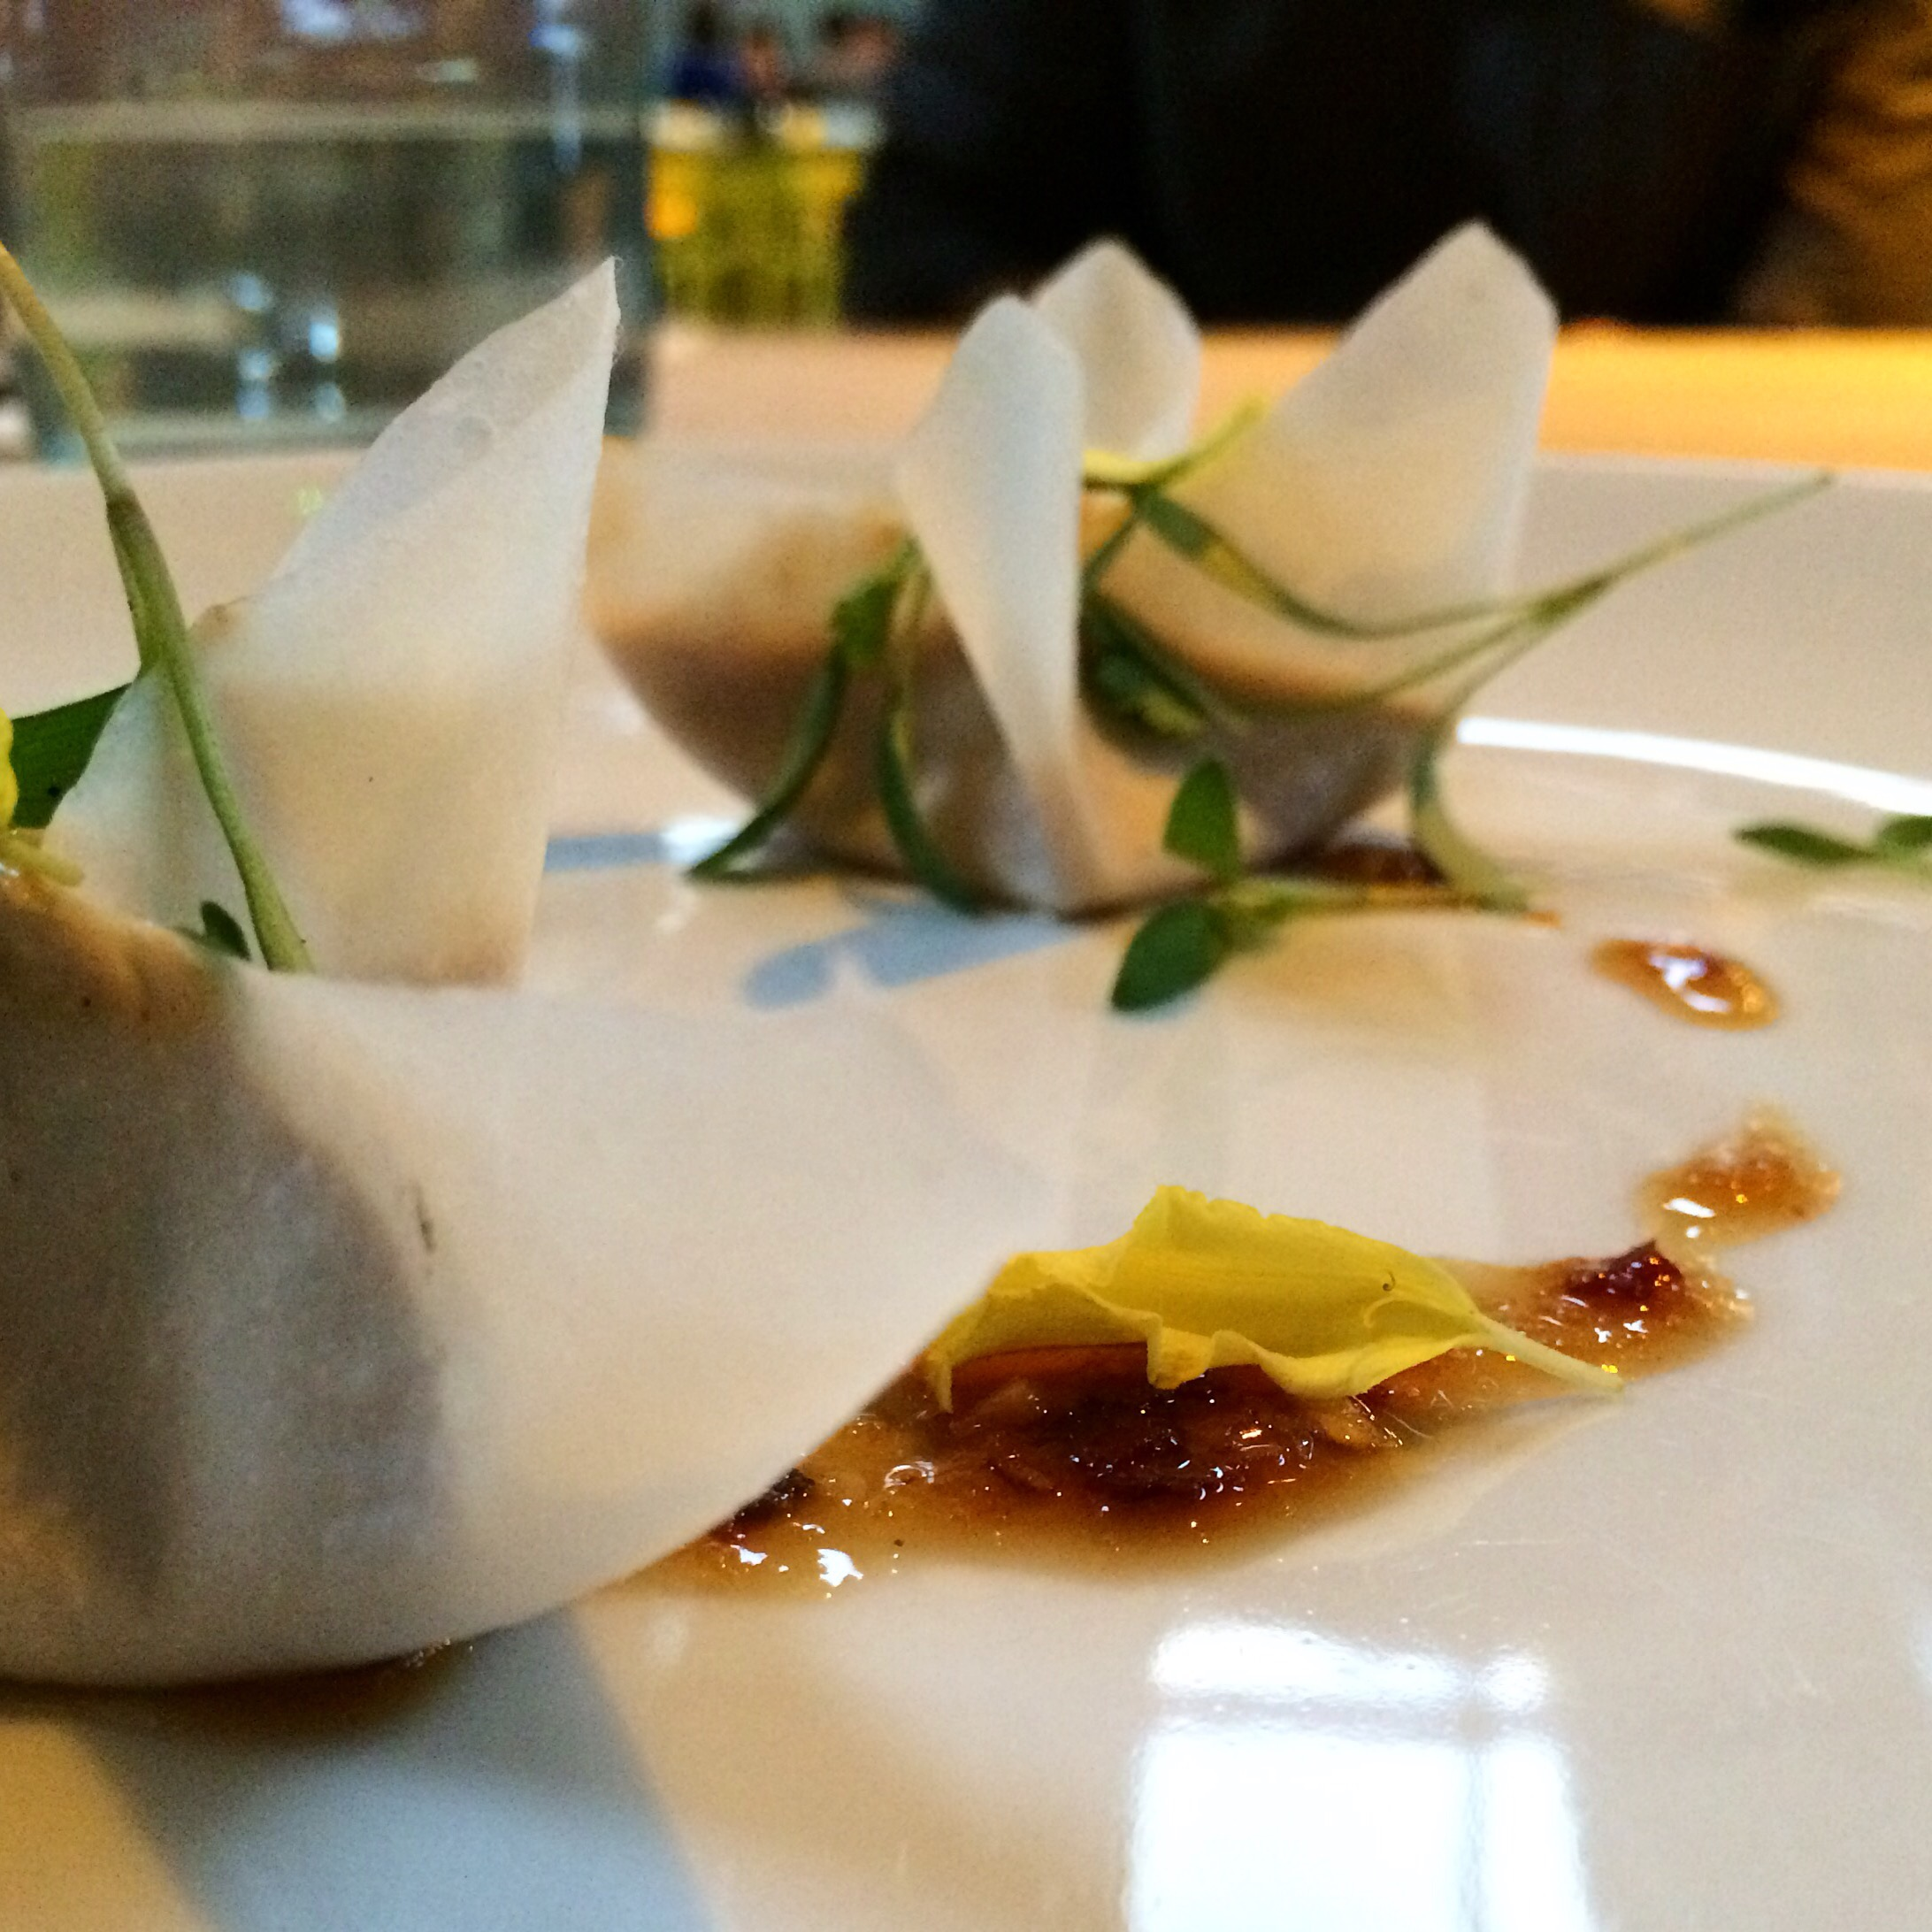 """Second Course  Rangoons  coconut wonton, """"Old Bay"""" cream cheese, bell pepper, celery, sweet chili sauce. *it contains honey so sadly I did not partake in this course."""